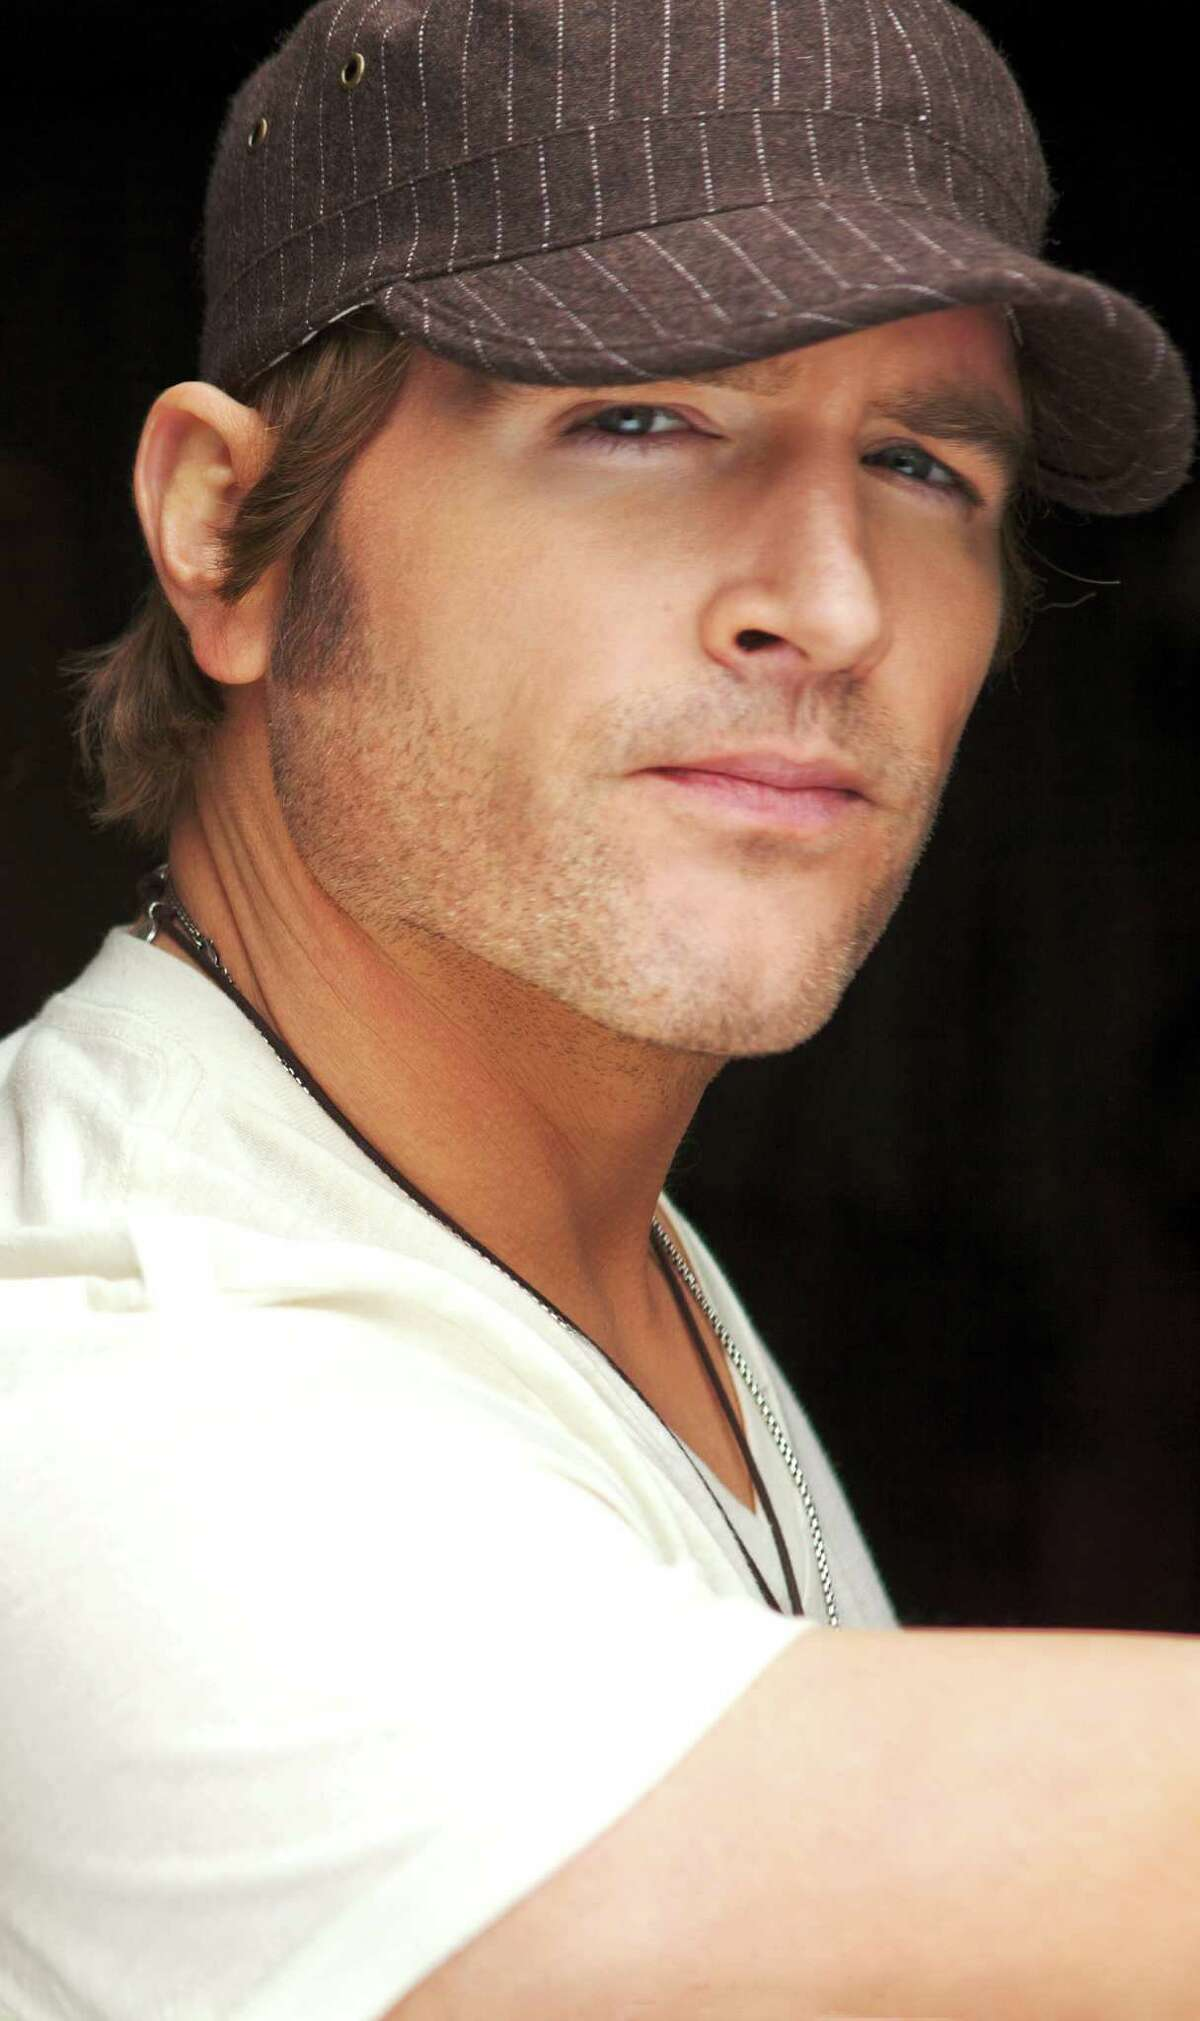 Jerrod Niemann was a successful songwriter before starting his singing career.